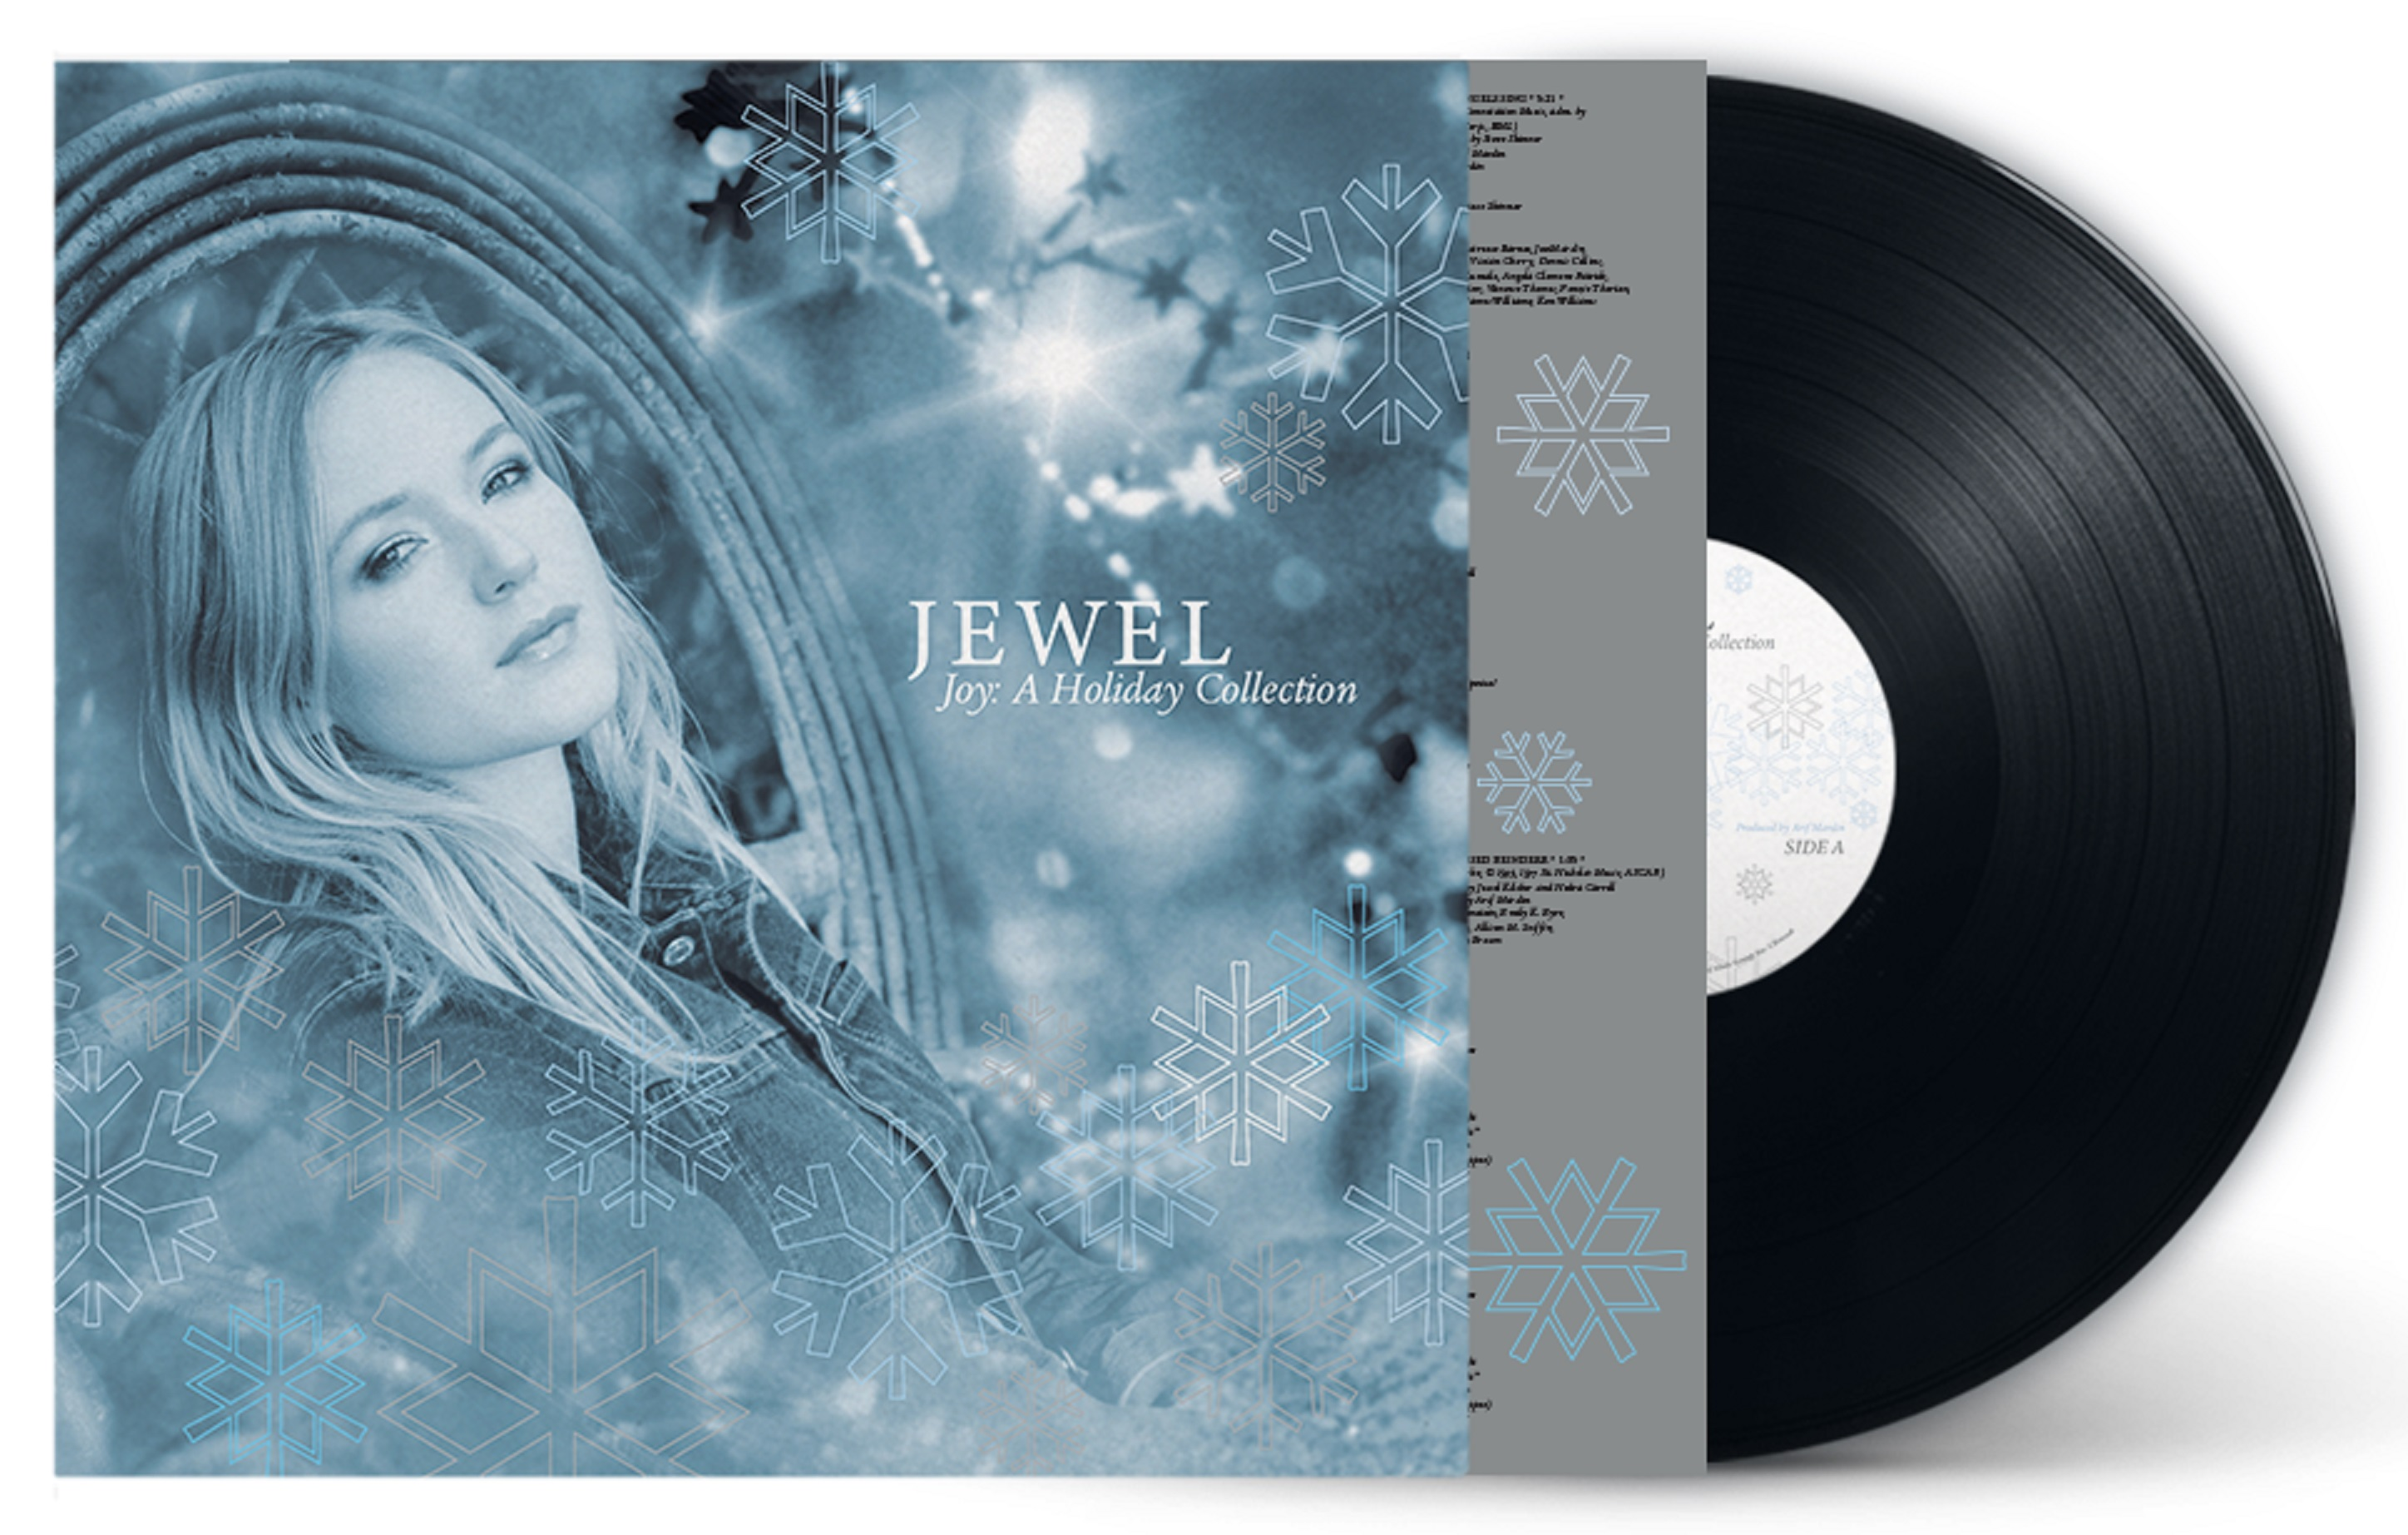 Jewel's platinum selling title 'Joy: A Holiday Collection' set for vinyl debut on 10/18